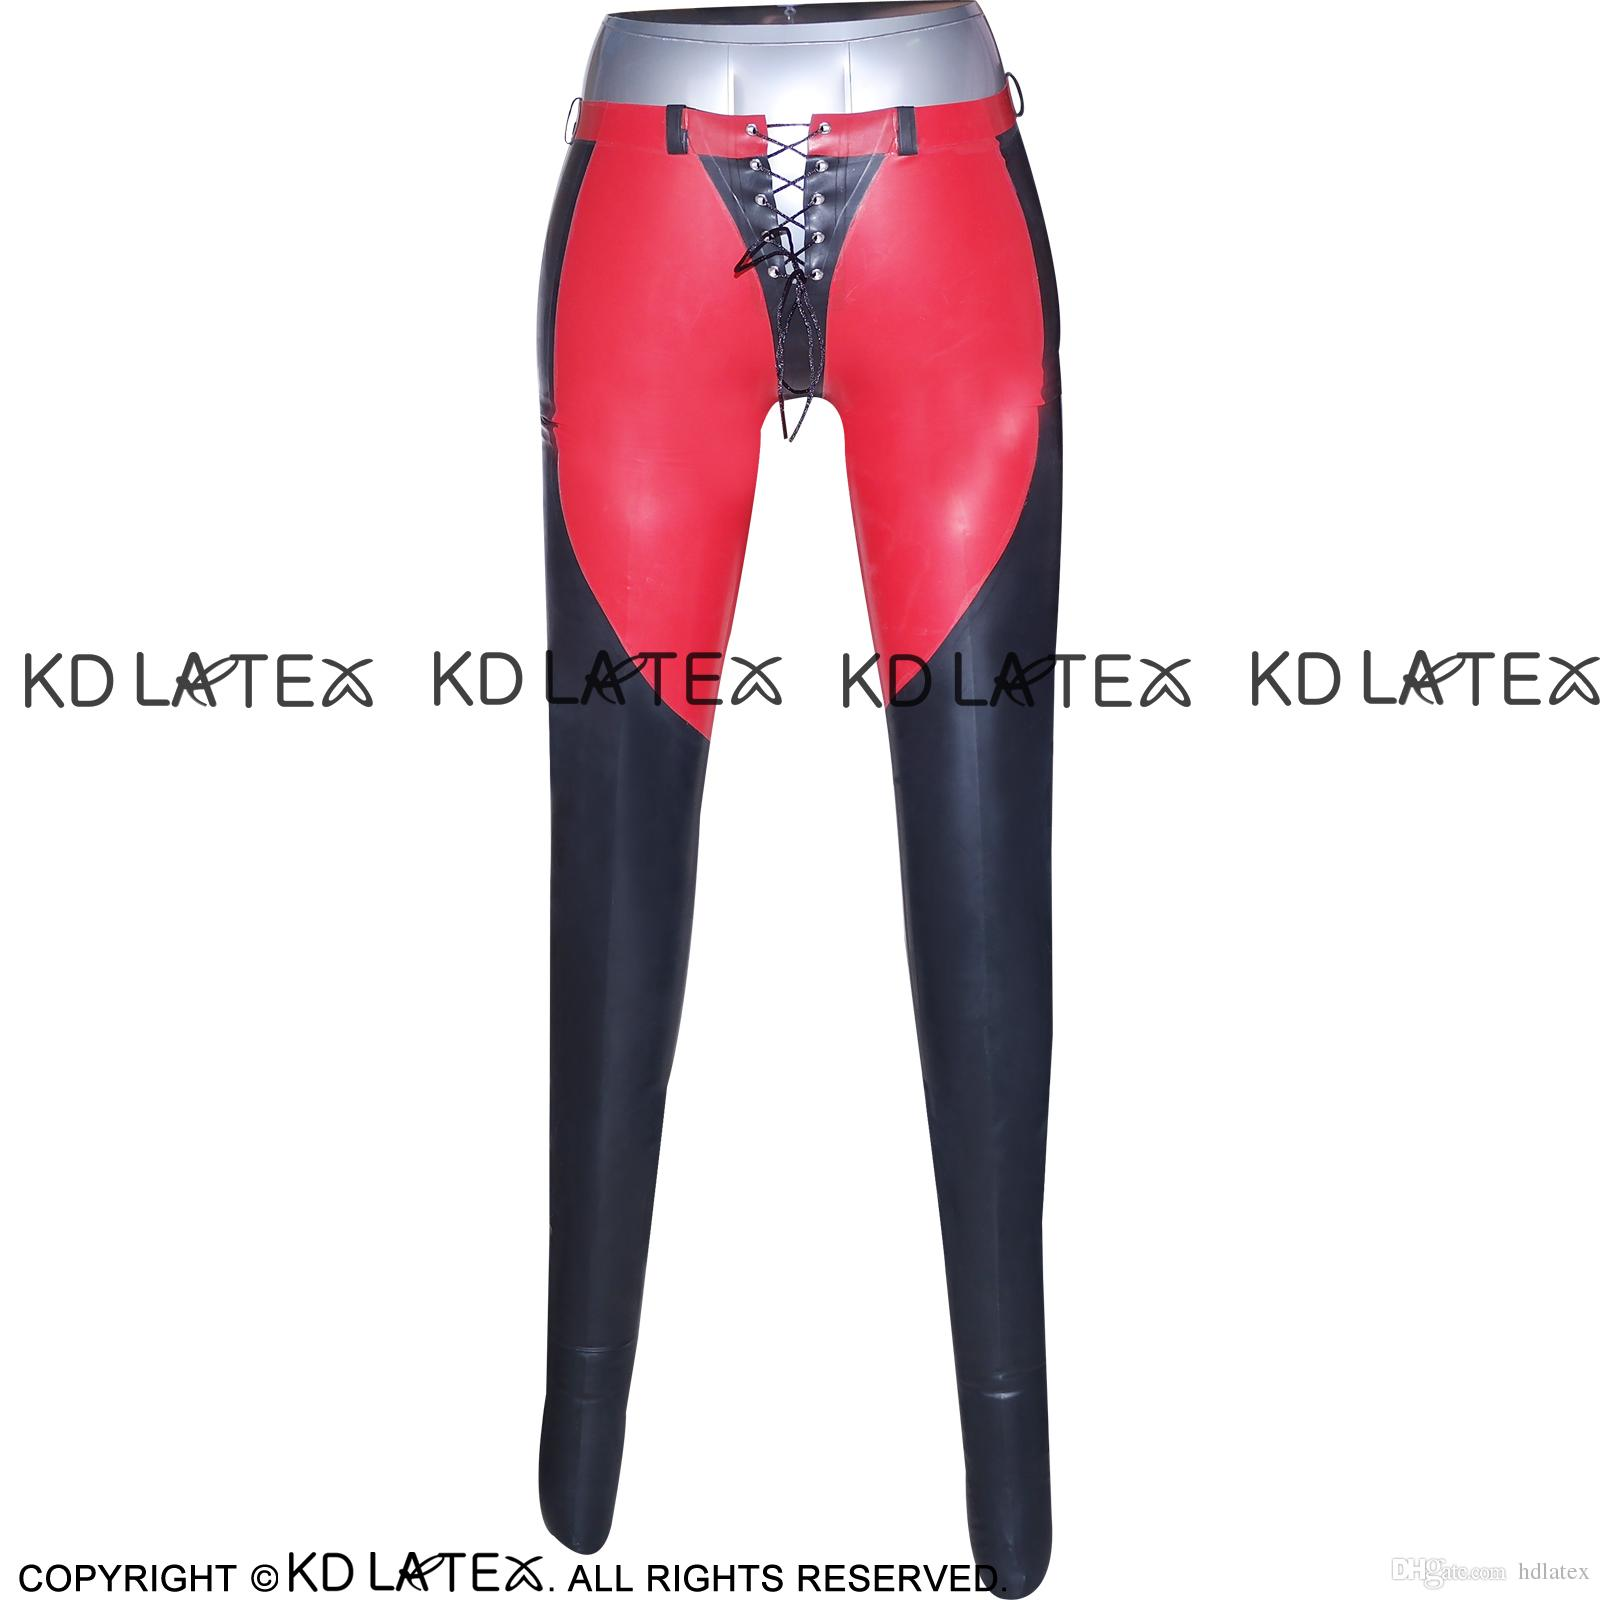 a7b4c3430ea929 2019 Black With Red Trims Sexy Latex Leggings With Lacing Front And Back  Fetish Bondage Rubber Pants Jeans Trousers 0010 From Hdlatex, $87.24 |  DHgate.Com